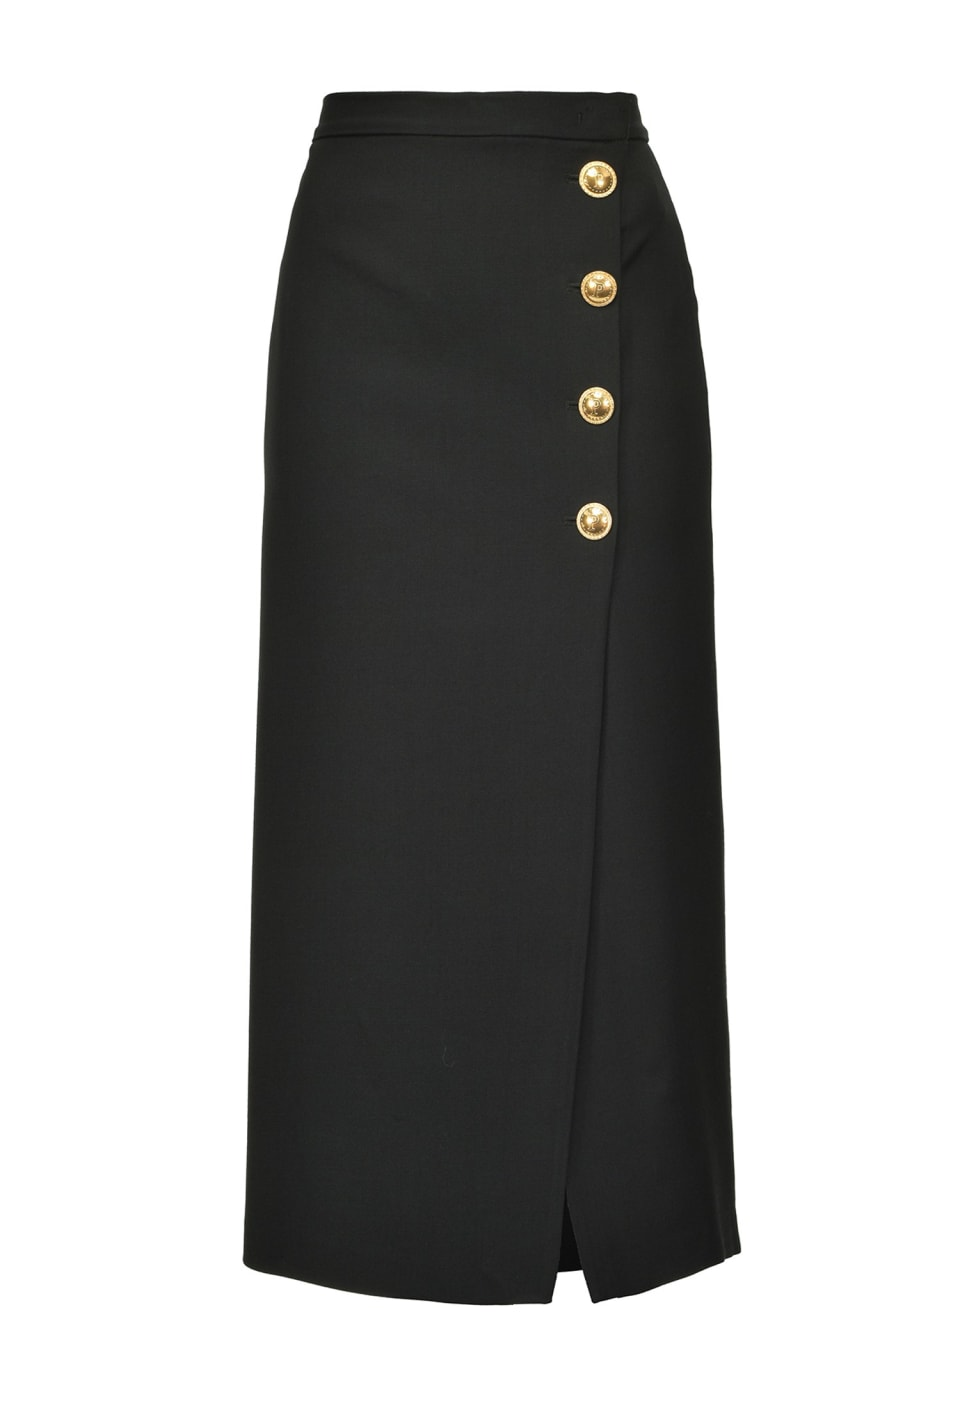 Midi-length skirt with maxi golden buttons